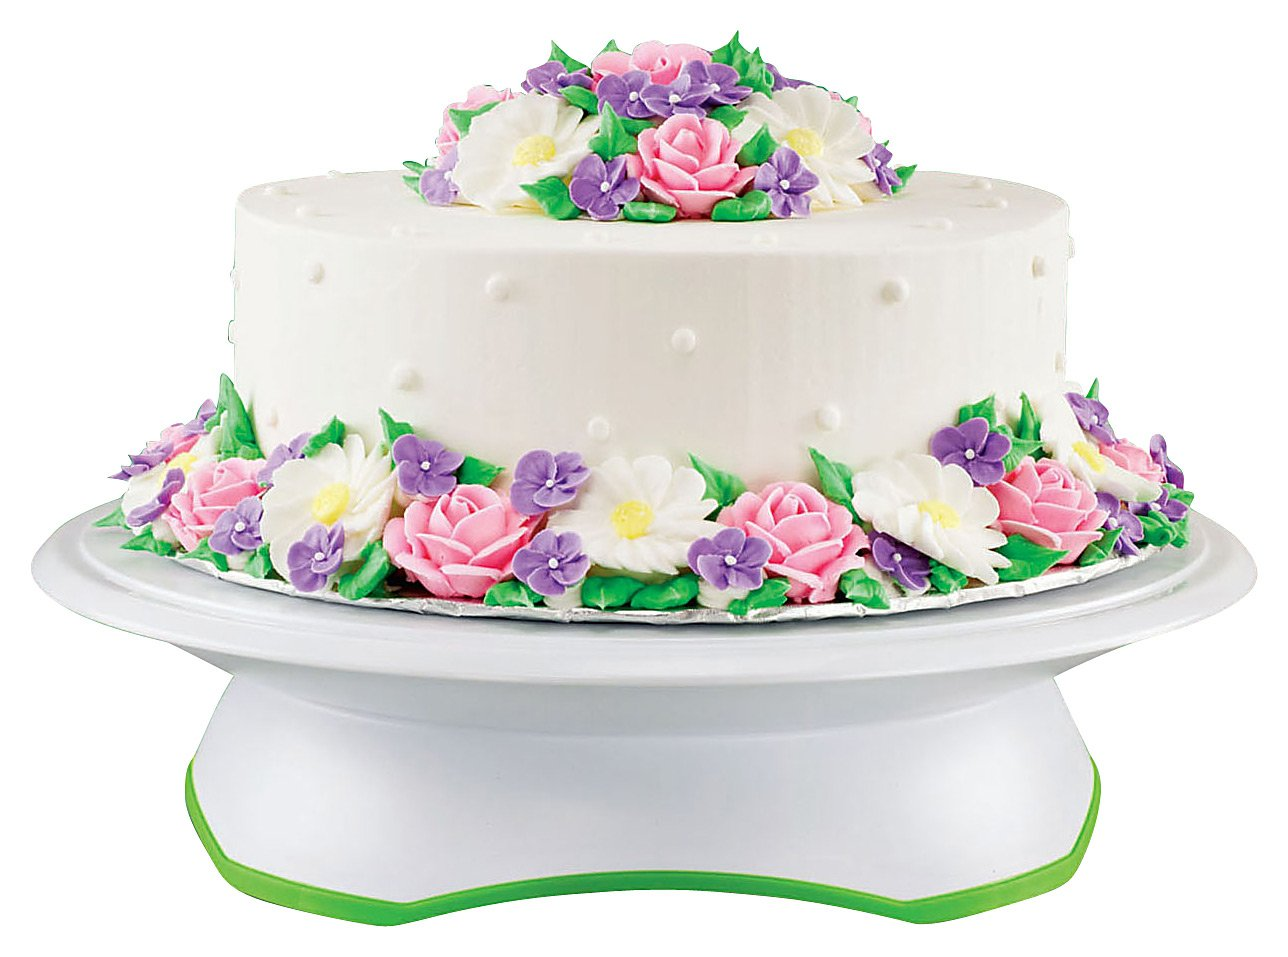 Review Of Wilton Trim N Turn Ultra Rotating Cake Stand